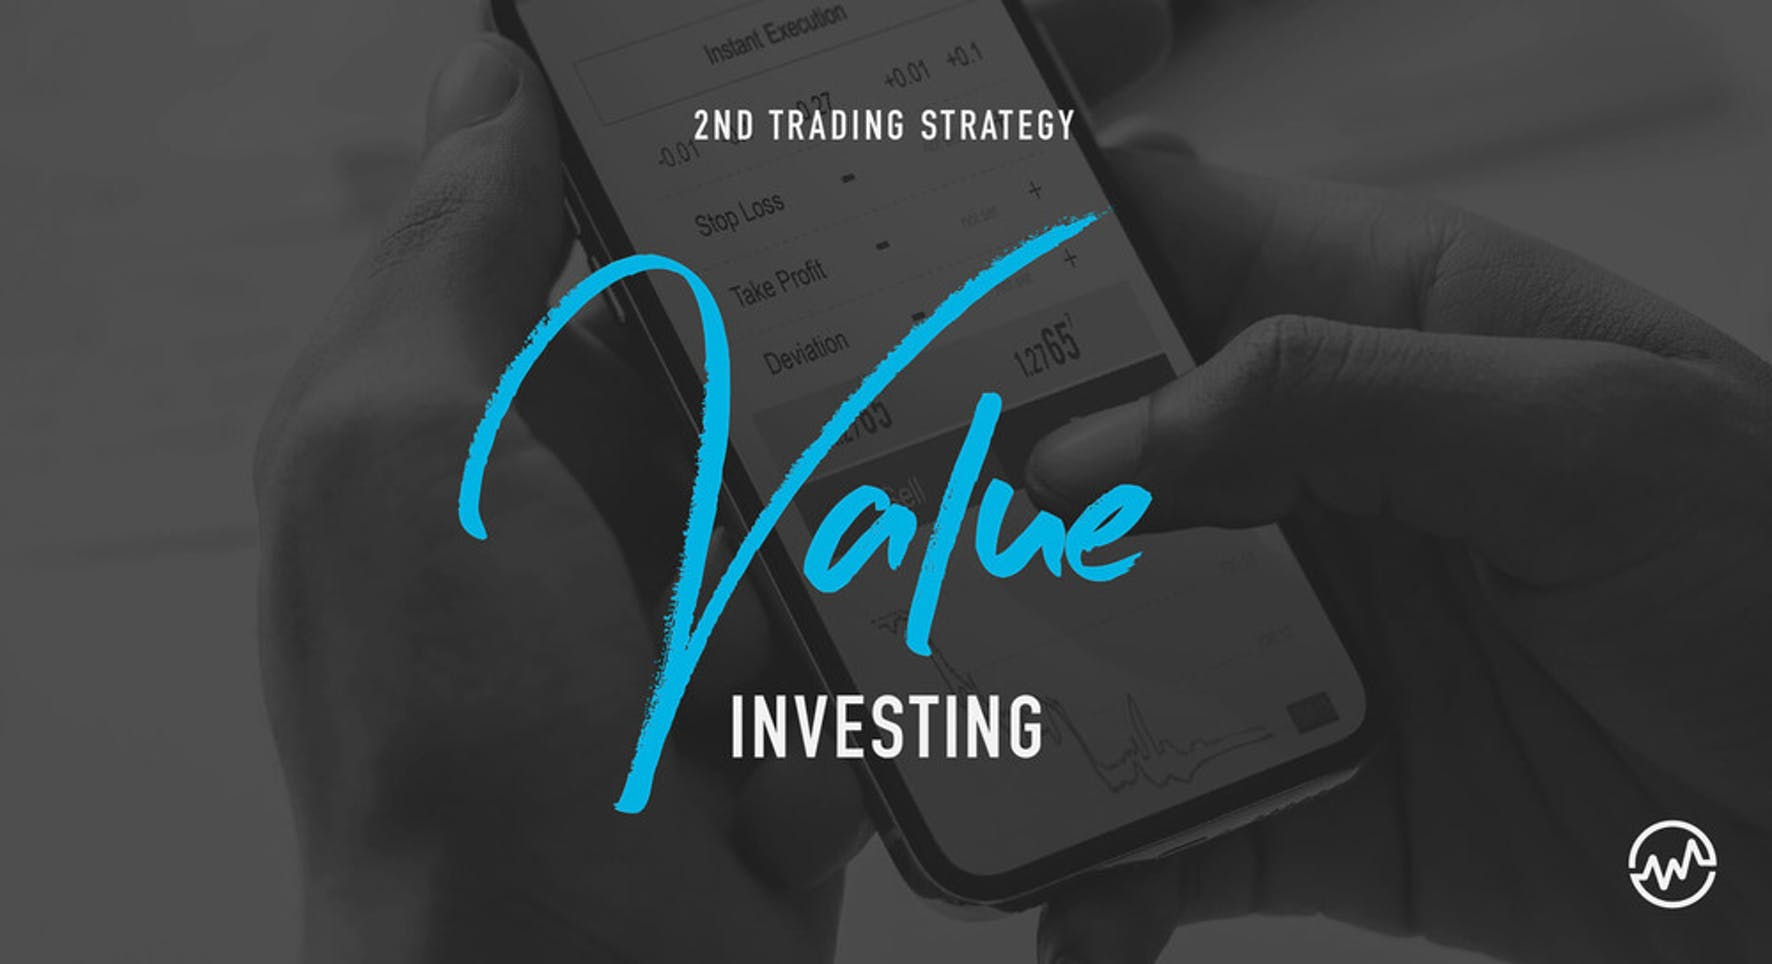 Stock market investing on a phone